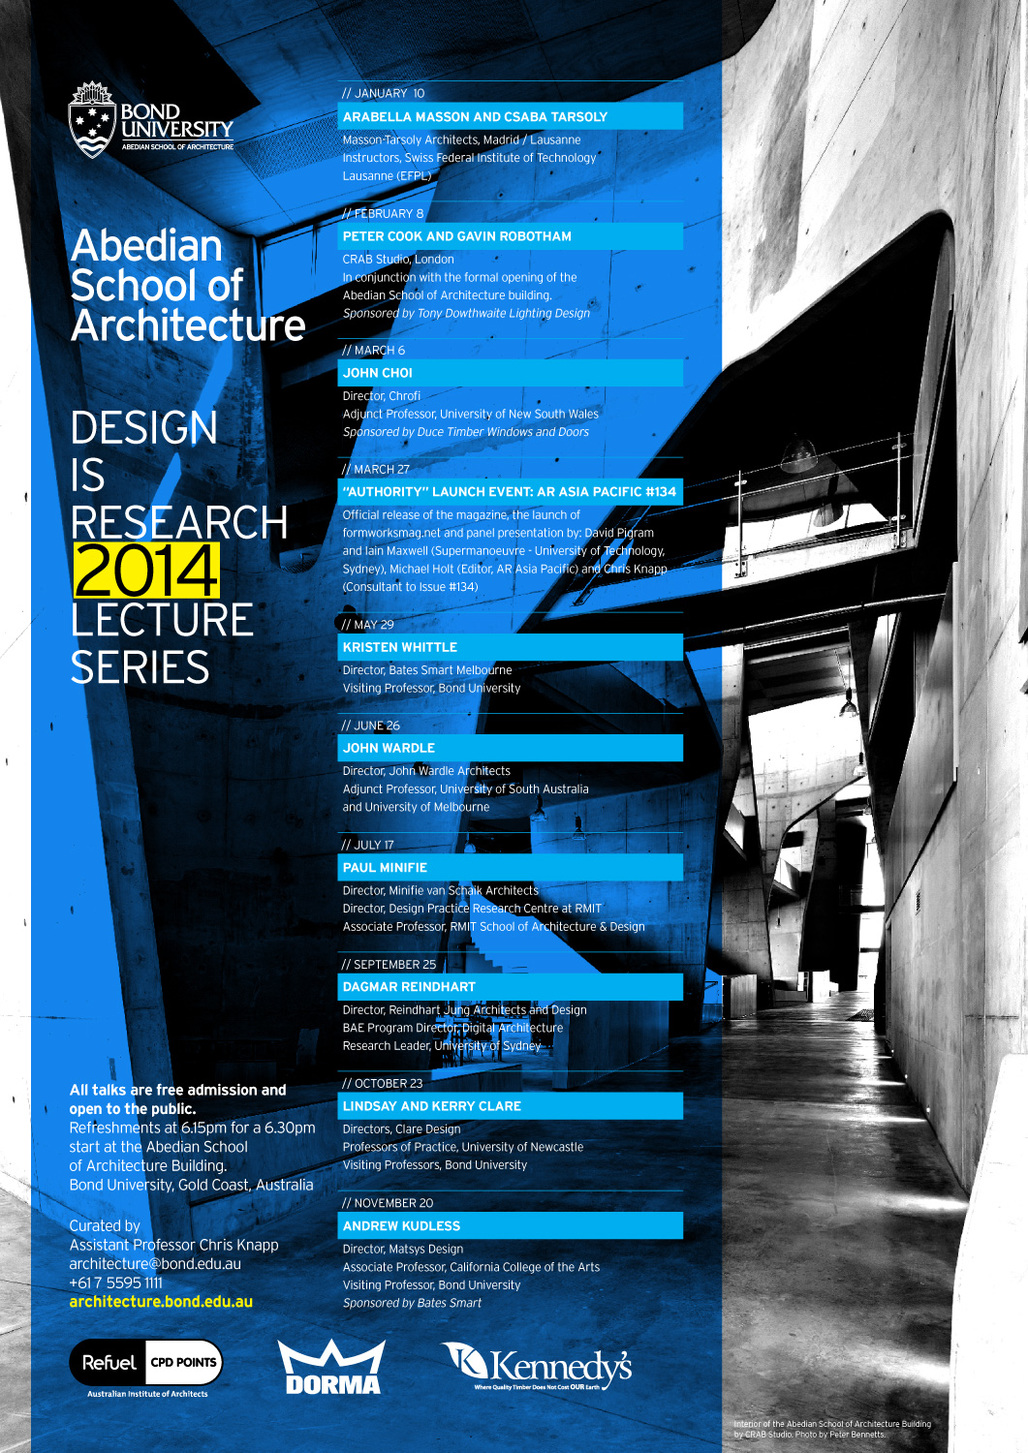 2014 Lecture Series at Bond Universitys Abedian School of Architecture. Image courtesy of Abedian School of Architecture.